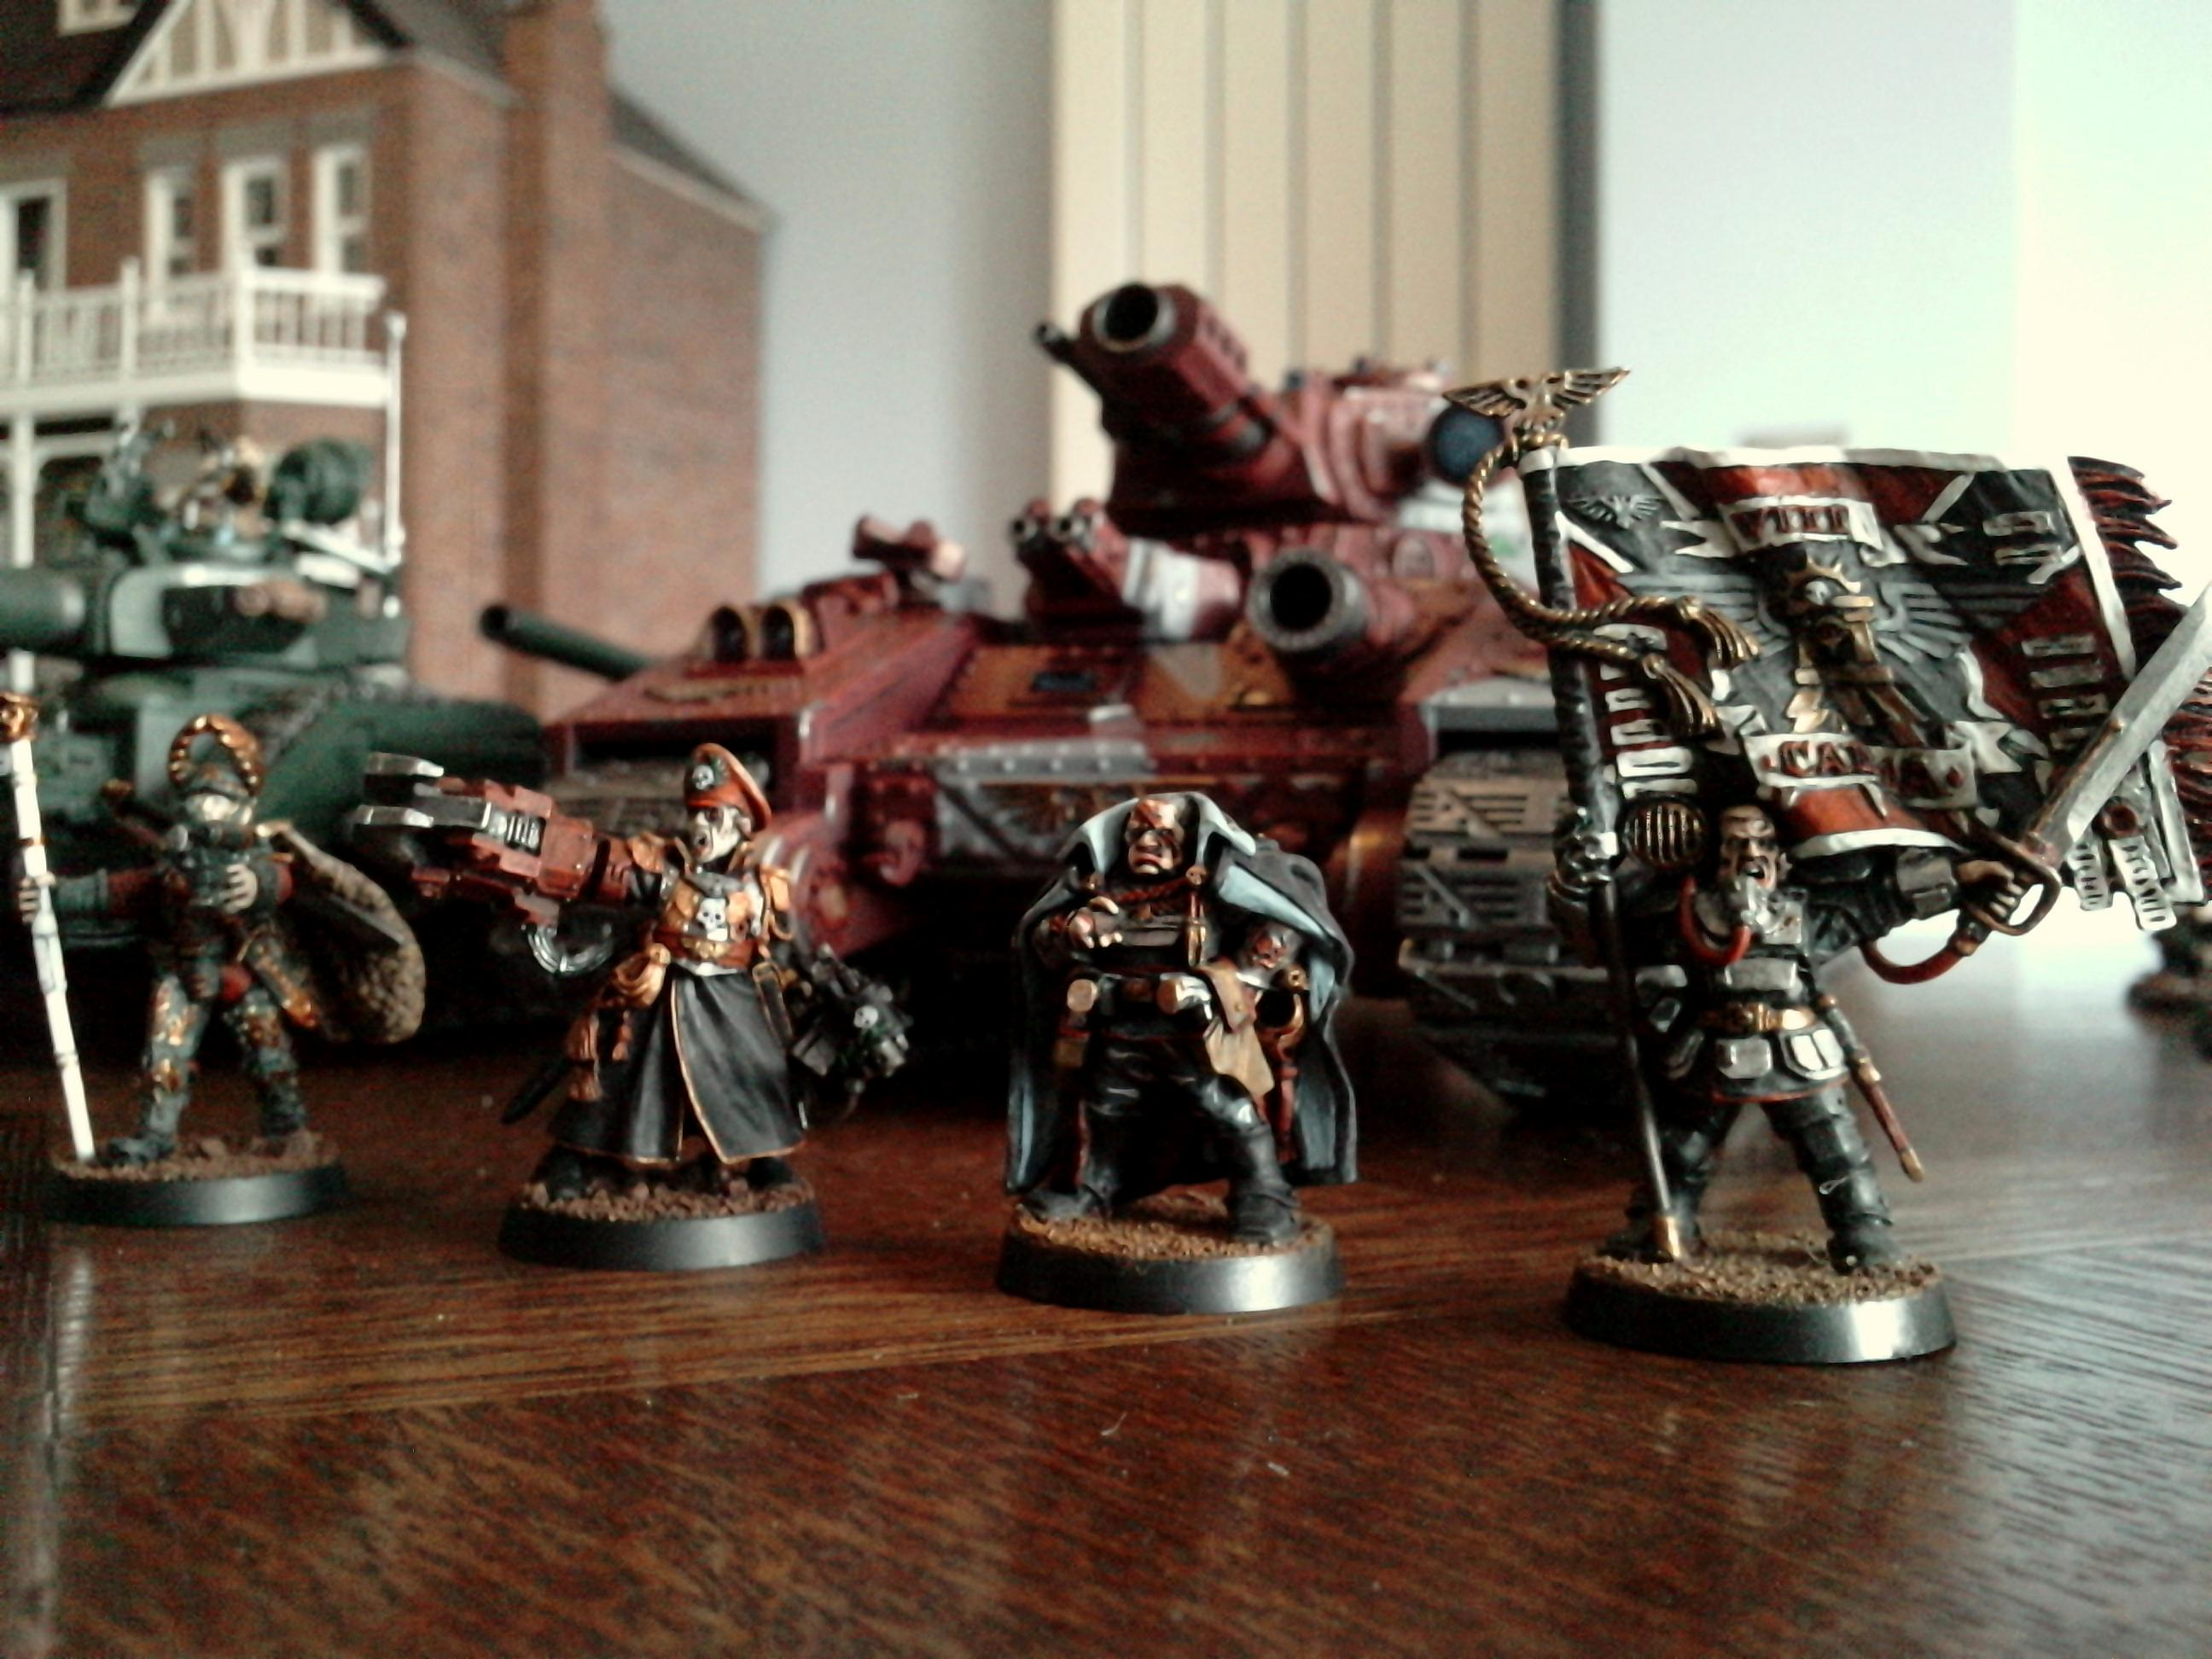 Commisar Yarrick Imperial Guard Jerran Kell Lord Solar Macharius Macharius Solar Macharius Usarkar Creed Warhammer 40 000 Special Characters And Hell Hammer Gallery Dakkadakka Roll The Dice To See